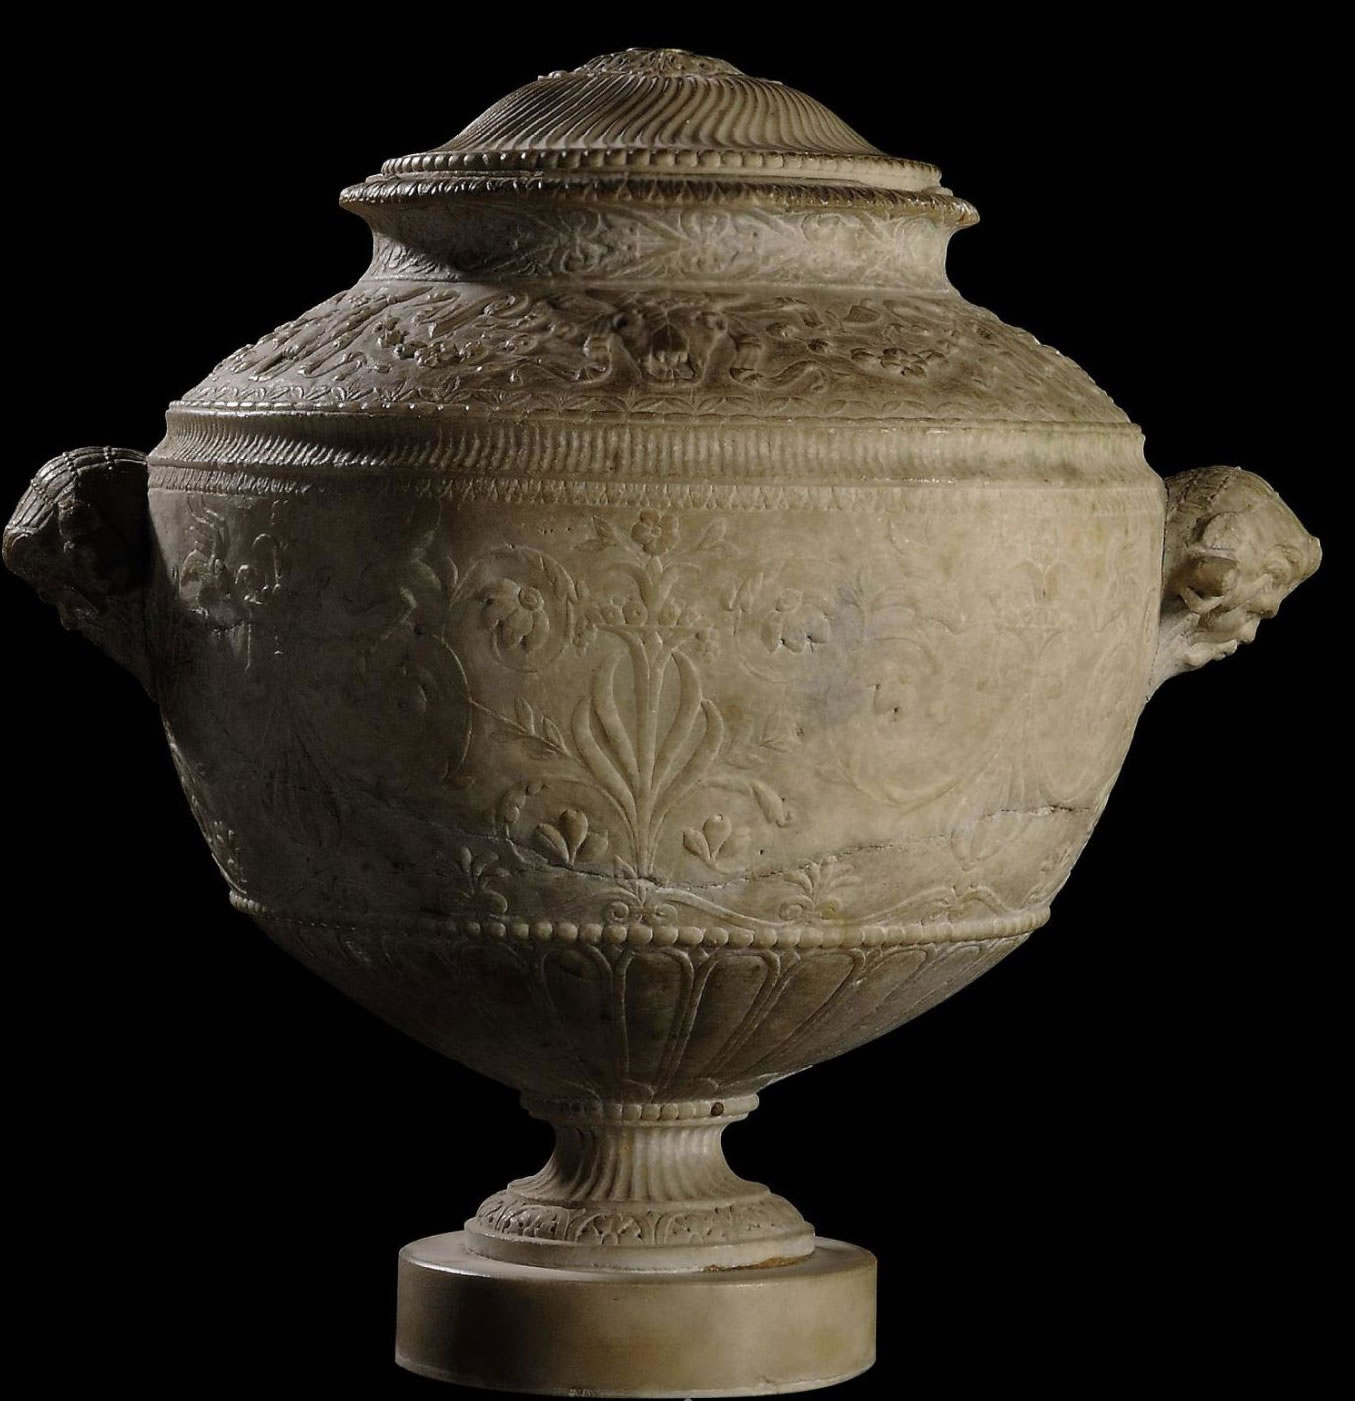 The history blog treasures roman funerary urn 1st cent ad tortured in the 1970s floridaeventfo Gallery